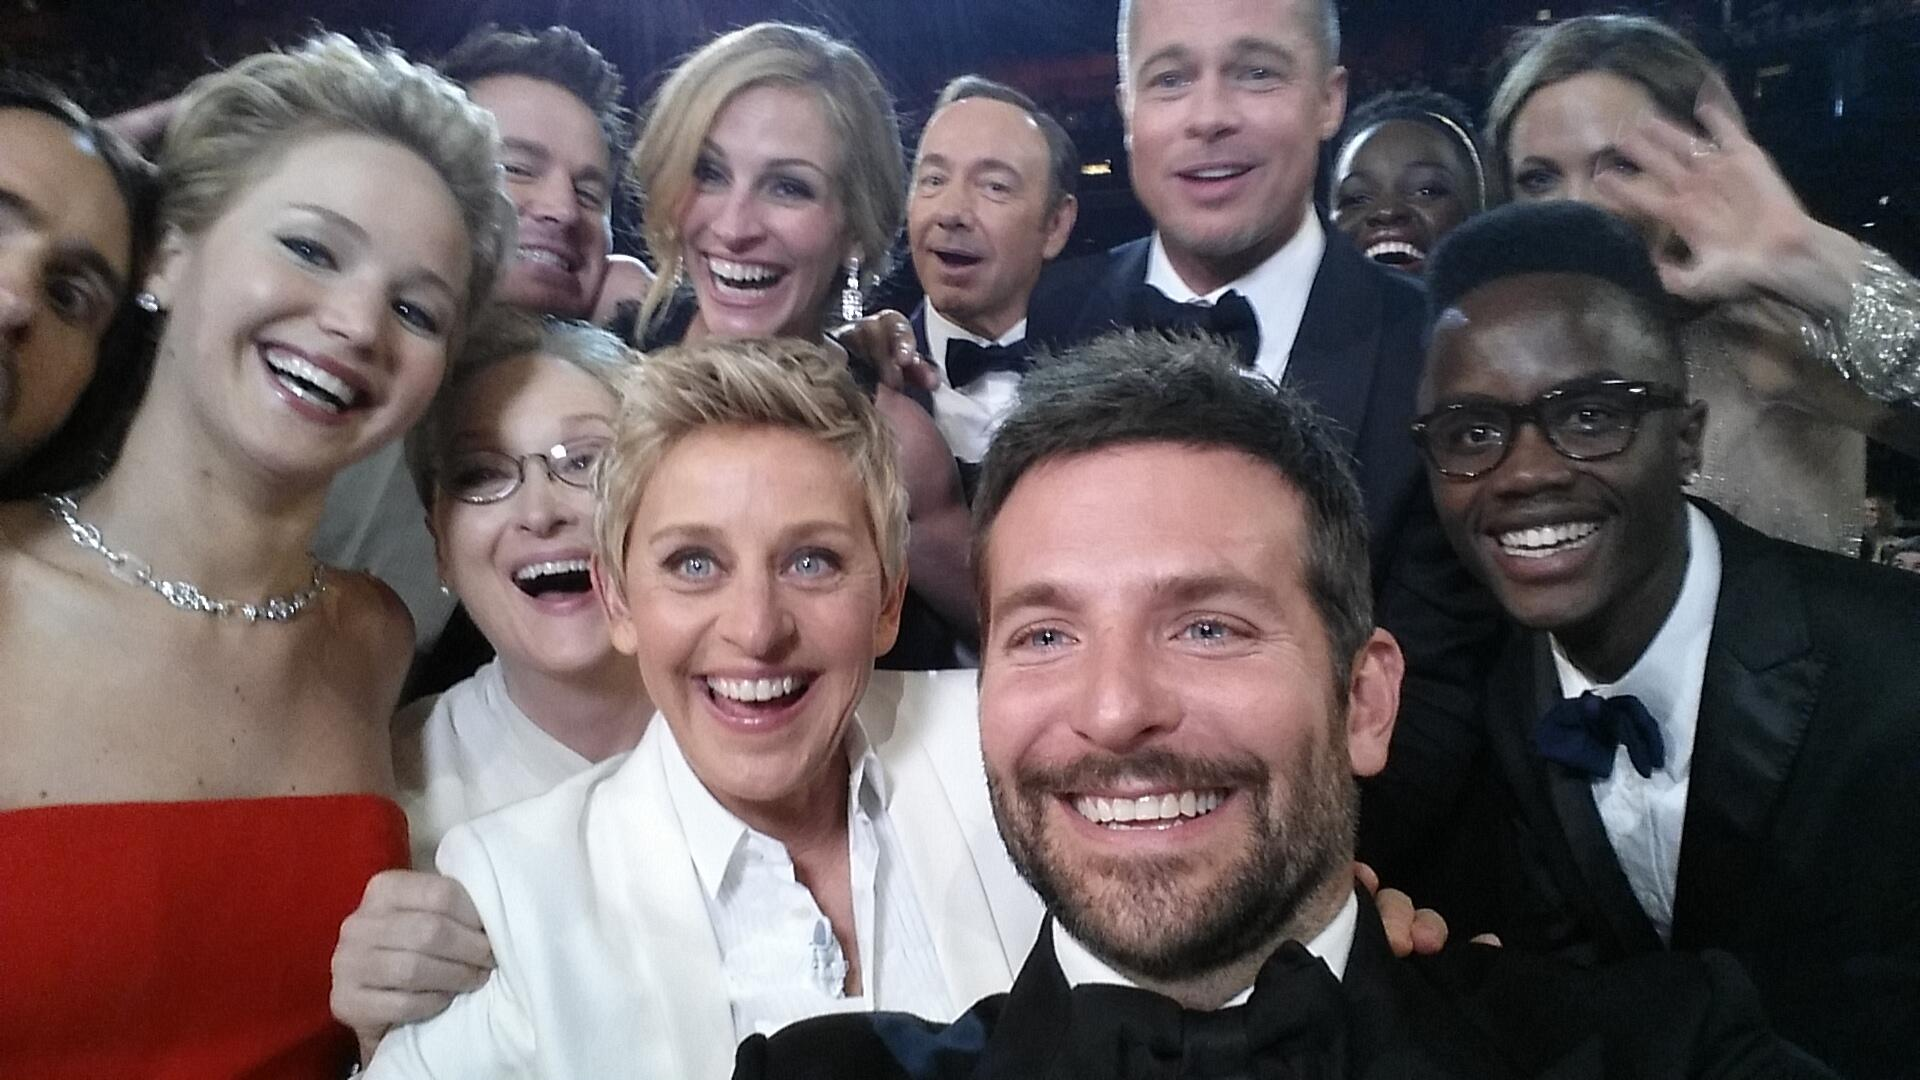 RT @TheEllenShow: If only Bradley's arm was longer. Best photo ever. #oscars http://t.co/C9U5NOtGap